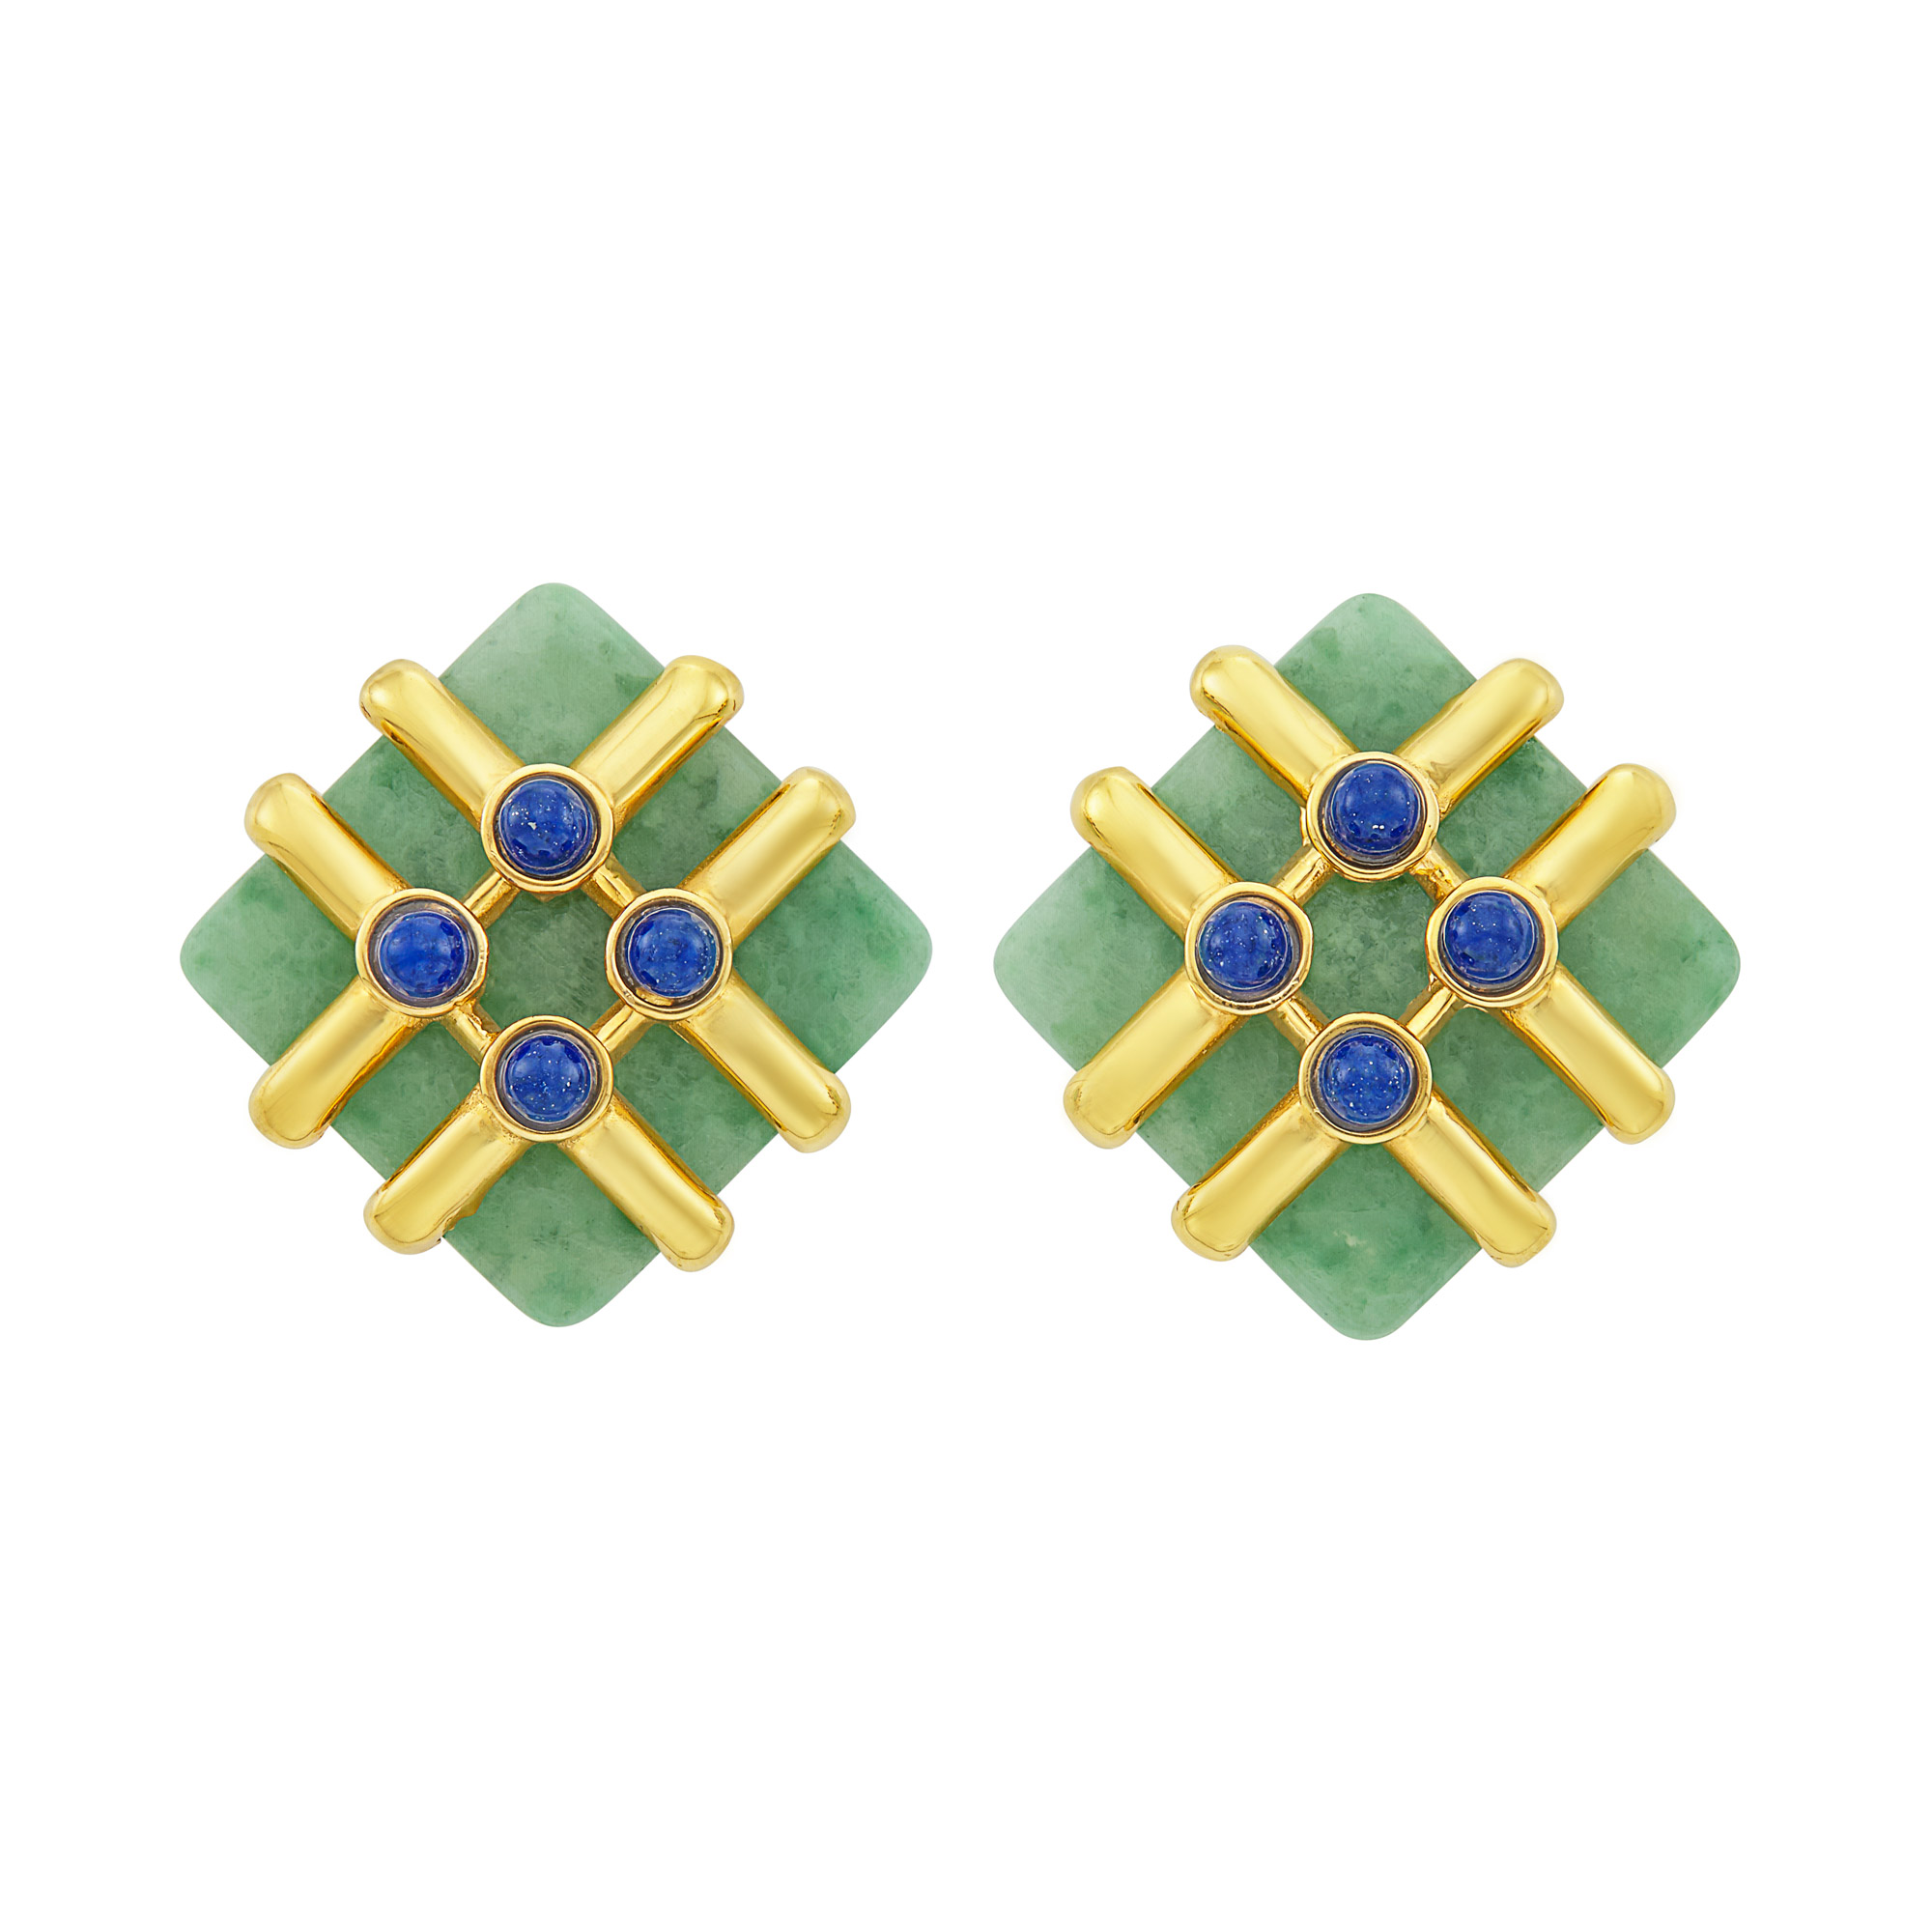 Lot image - Pair of Gold, Jade and Lapis Earclips, Cartier, Aldo Cipullo